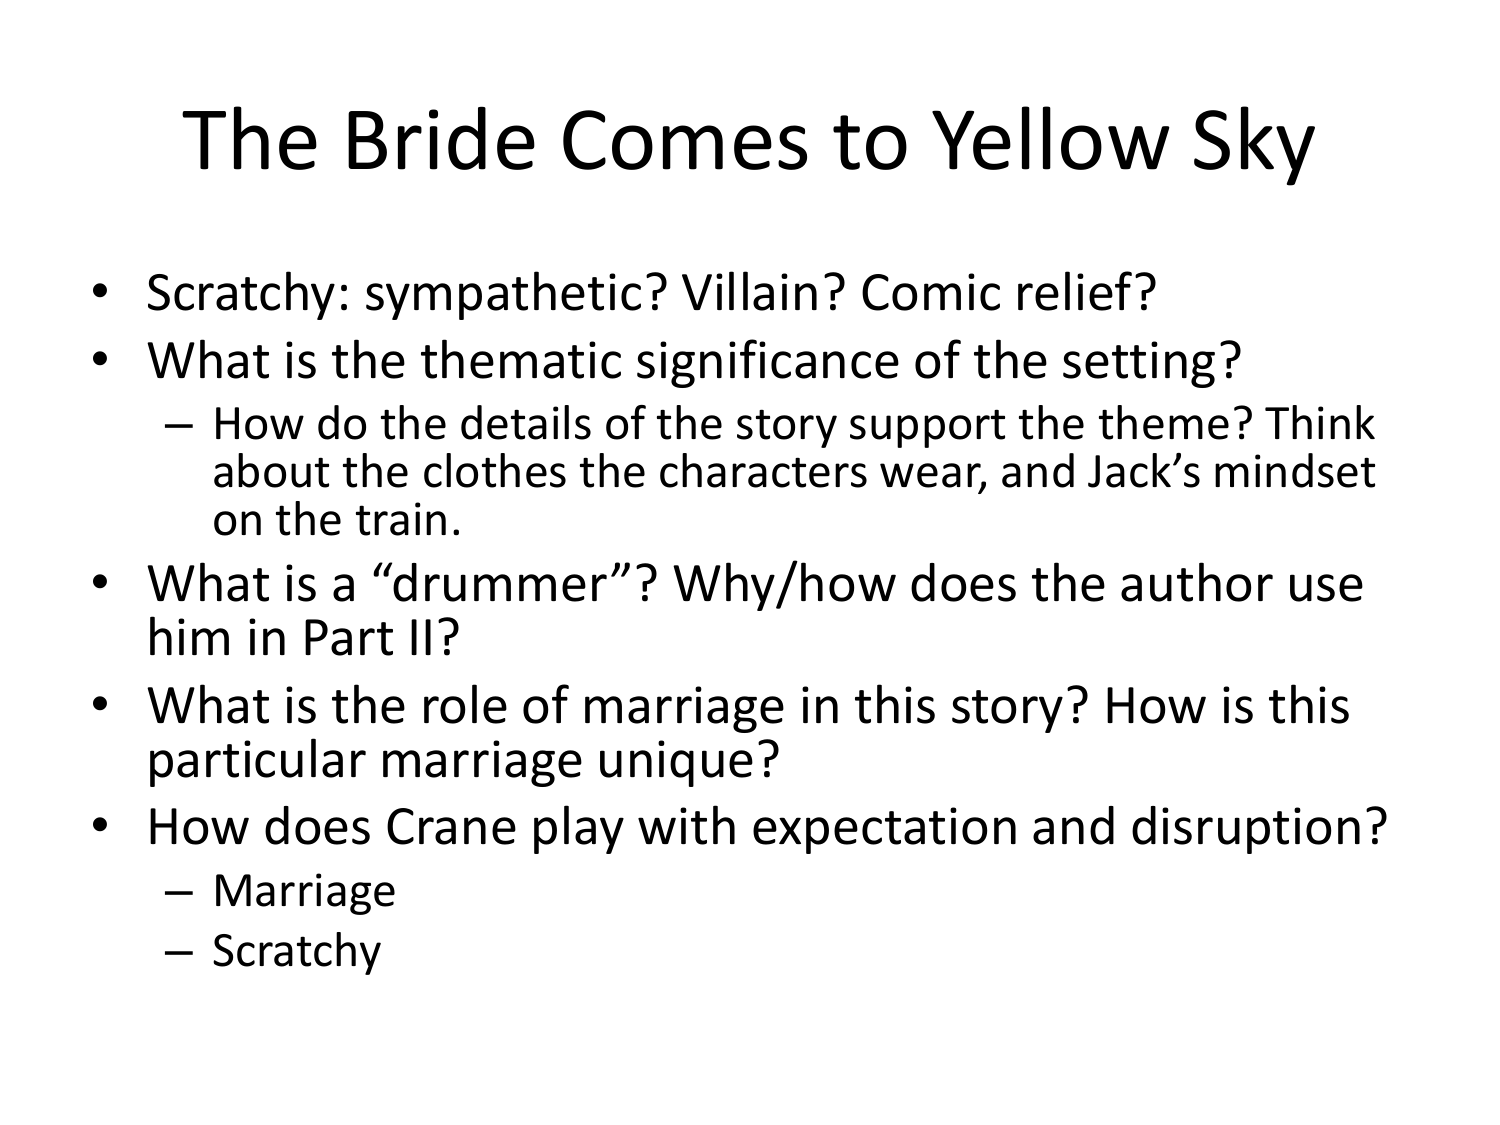 an analysis of the story the bride comes to yellow sky by stephen crane The bride comes to yellow sky by stephen crane stephen crane the great passenger train was moving fast and smoothly over the plains of texas, heading west, back to yellow sky, carrying sheriff potter and his new bride back home.